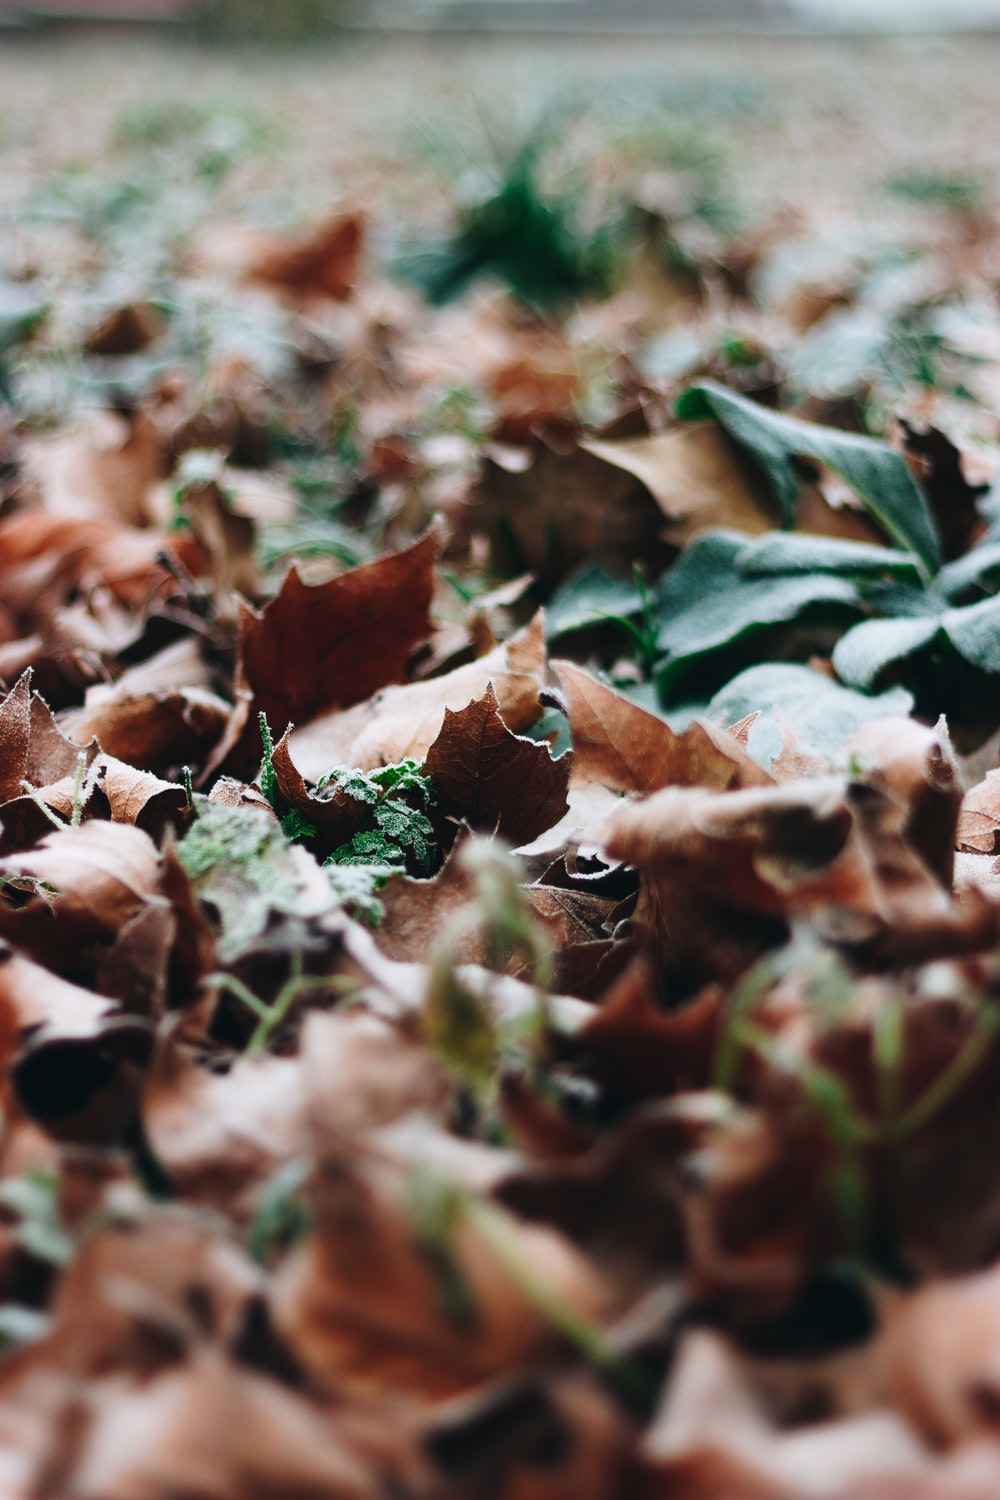 view of dried leaves on ground